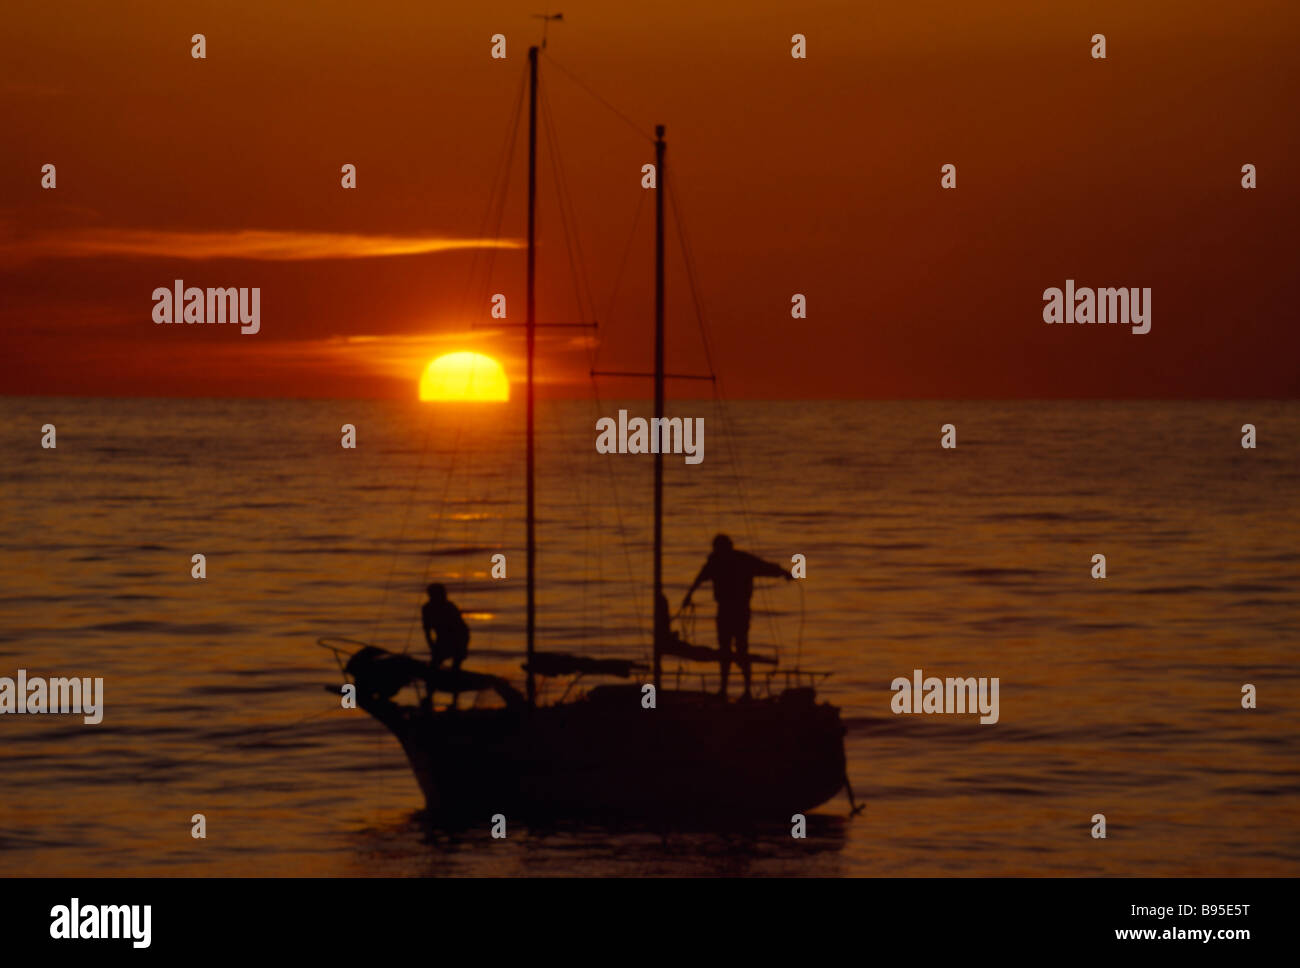 Wales Cardiganshire Borth Sailing Yachting Two people in silhouette on yacht at sunset with red sky and a low sun - Stock Image